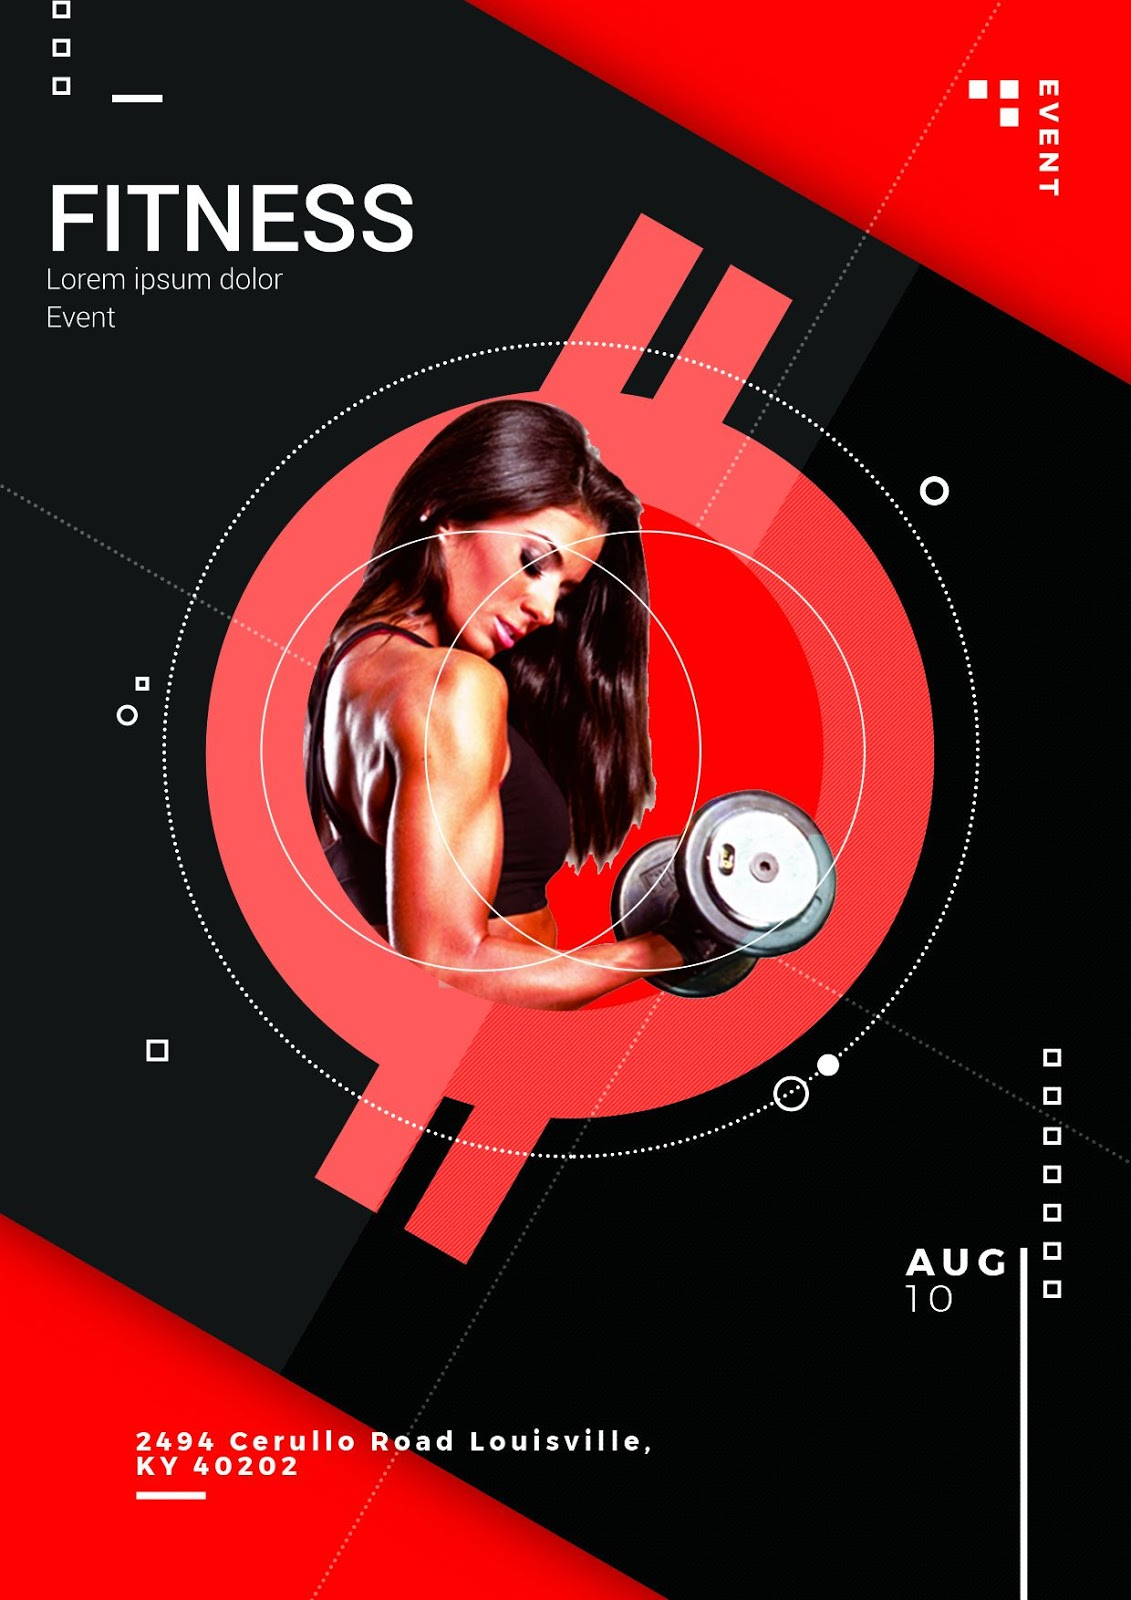 Fitness Event Flyer PSD Templates Download Free For Photoshop:  Download  The Best Free Fitness Gym Flyer PSD Flyer Templates For Sport Events.  Free Fitness Flyer Templates